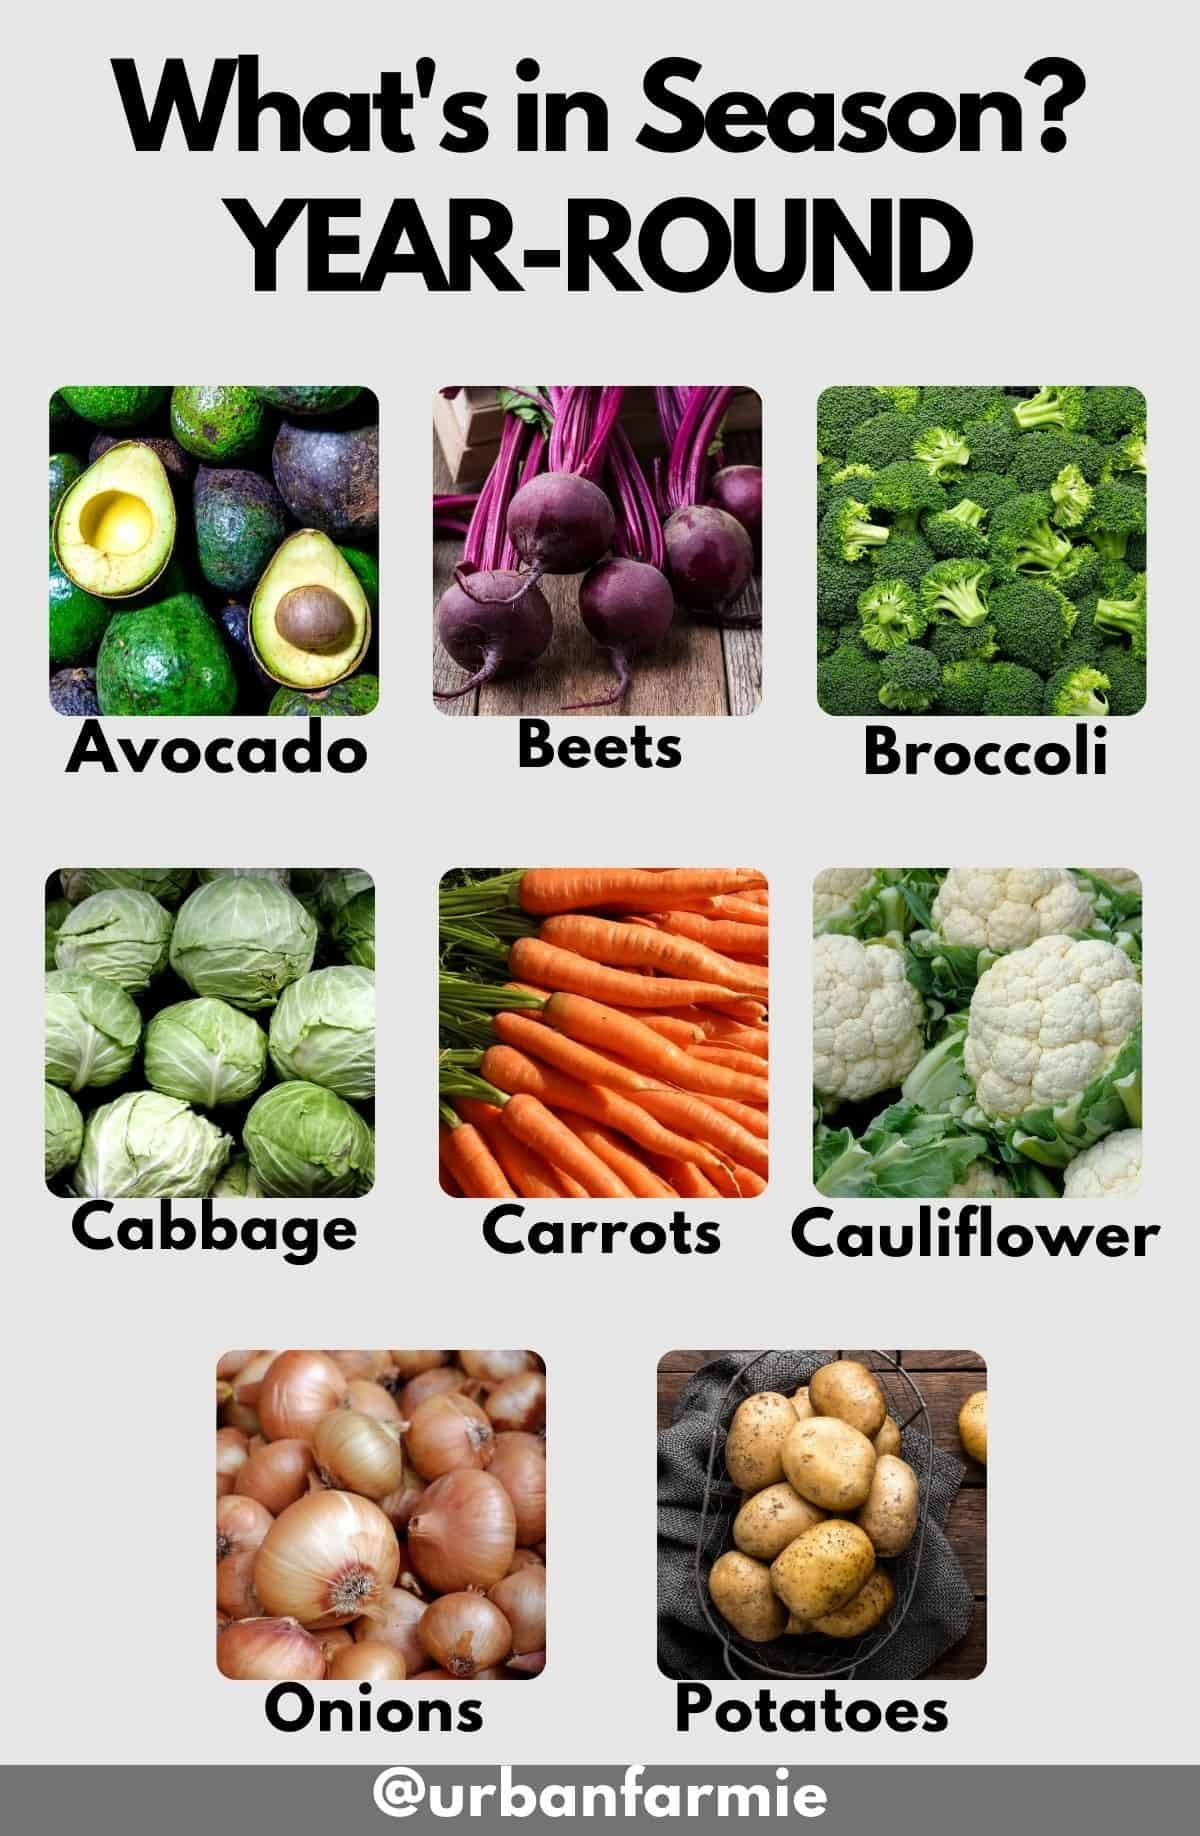 List of produce that's in season year-round as an infographic - check post for actual list!